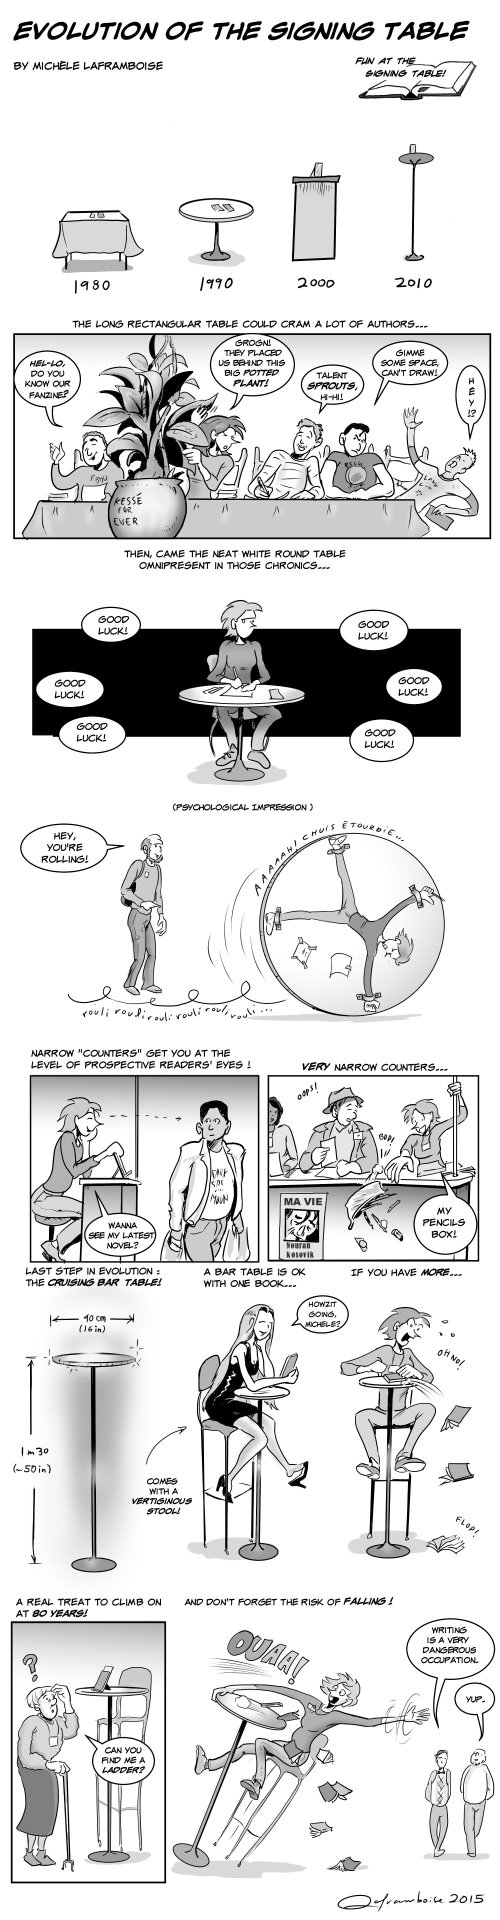 Evolution of the Signing Table  - Story and art by Michele Laframboise